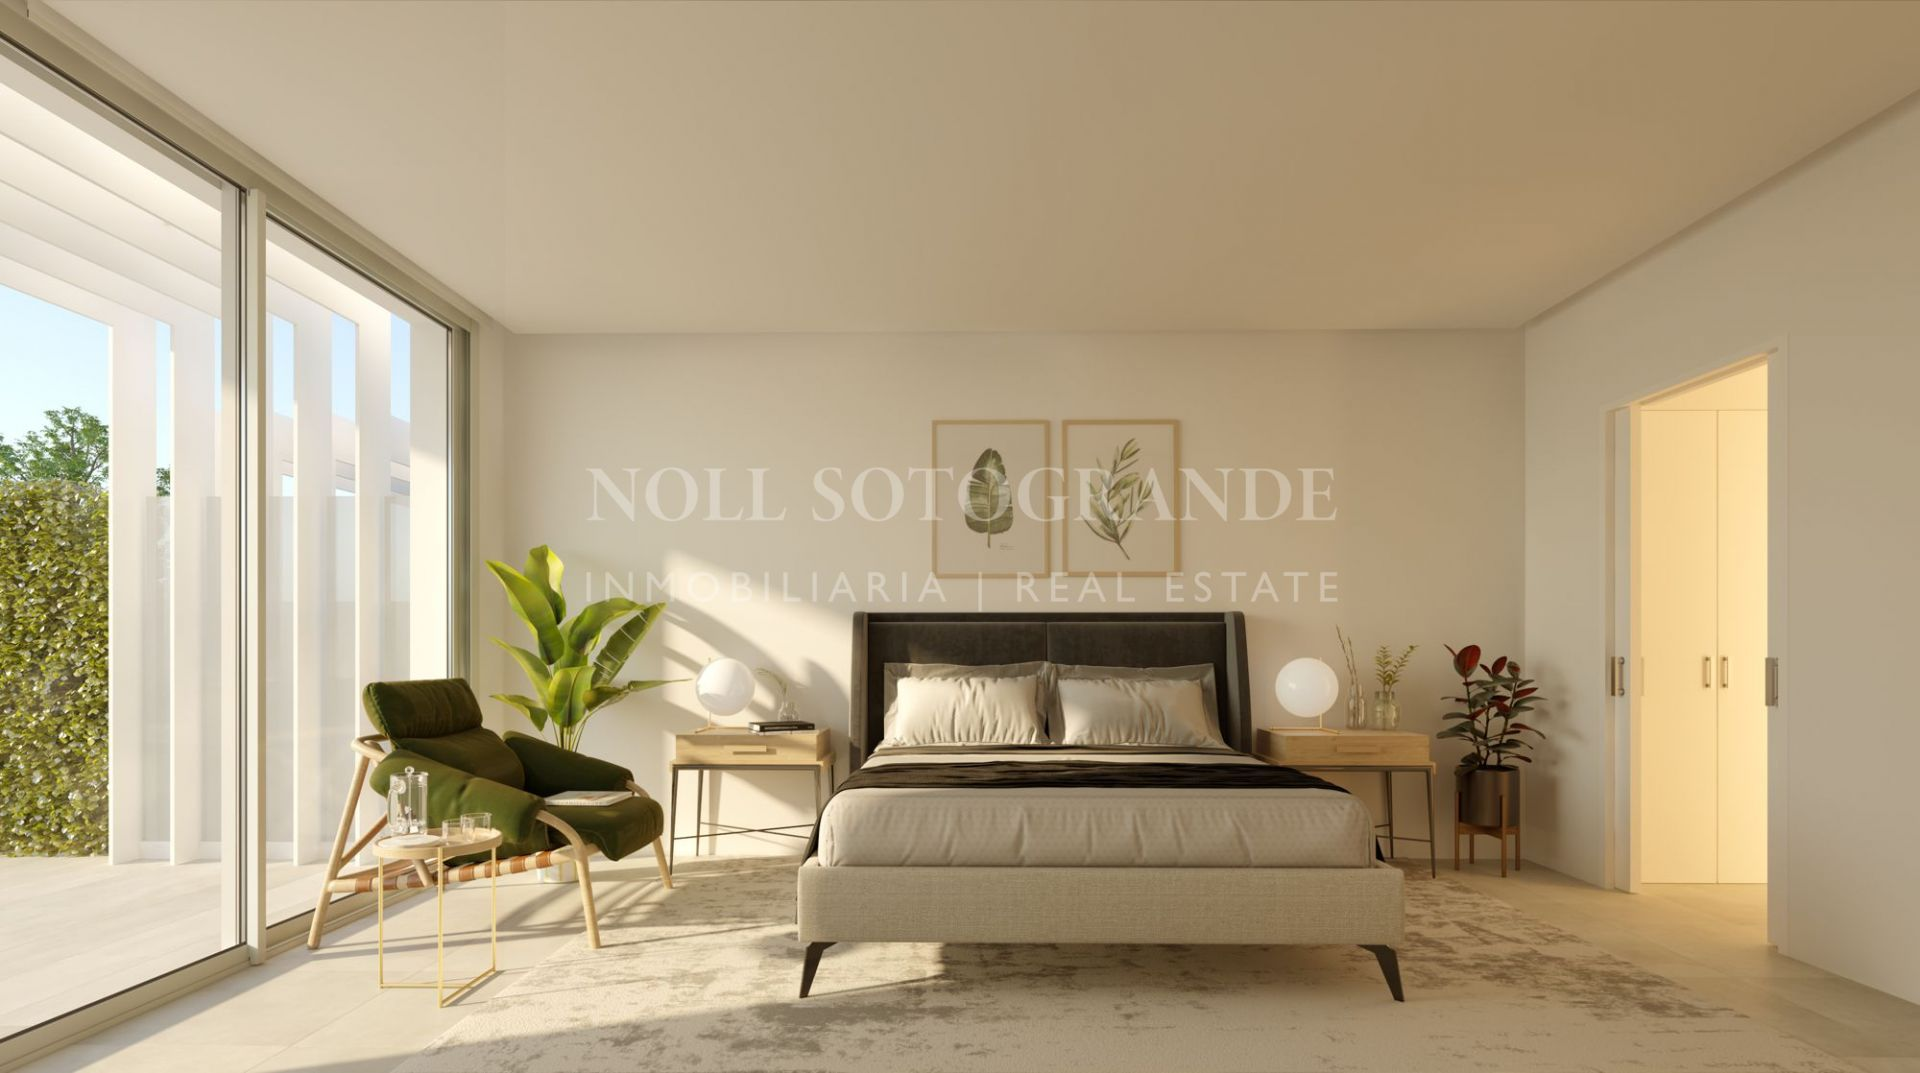 Contemporary townhouses for sale Sotogrande - La Finca